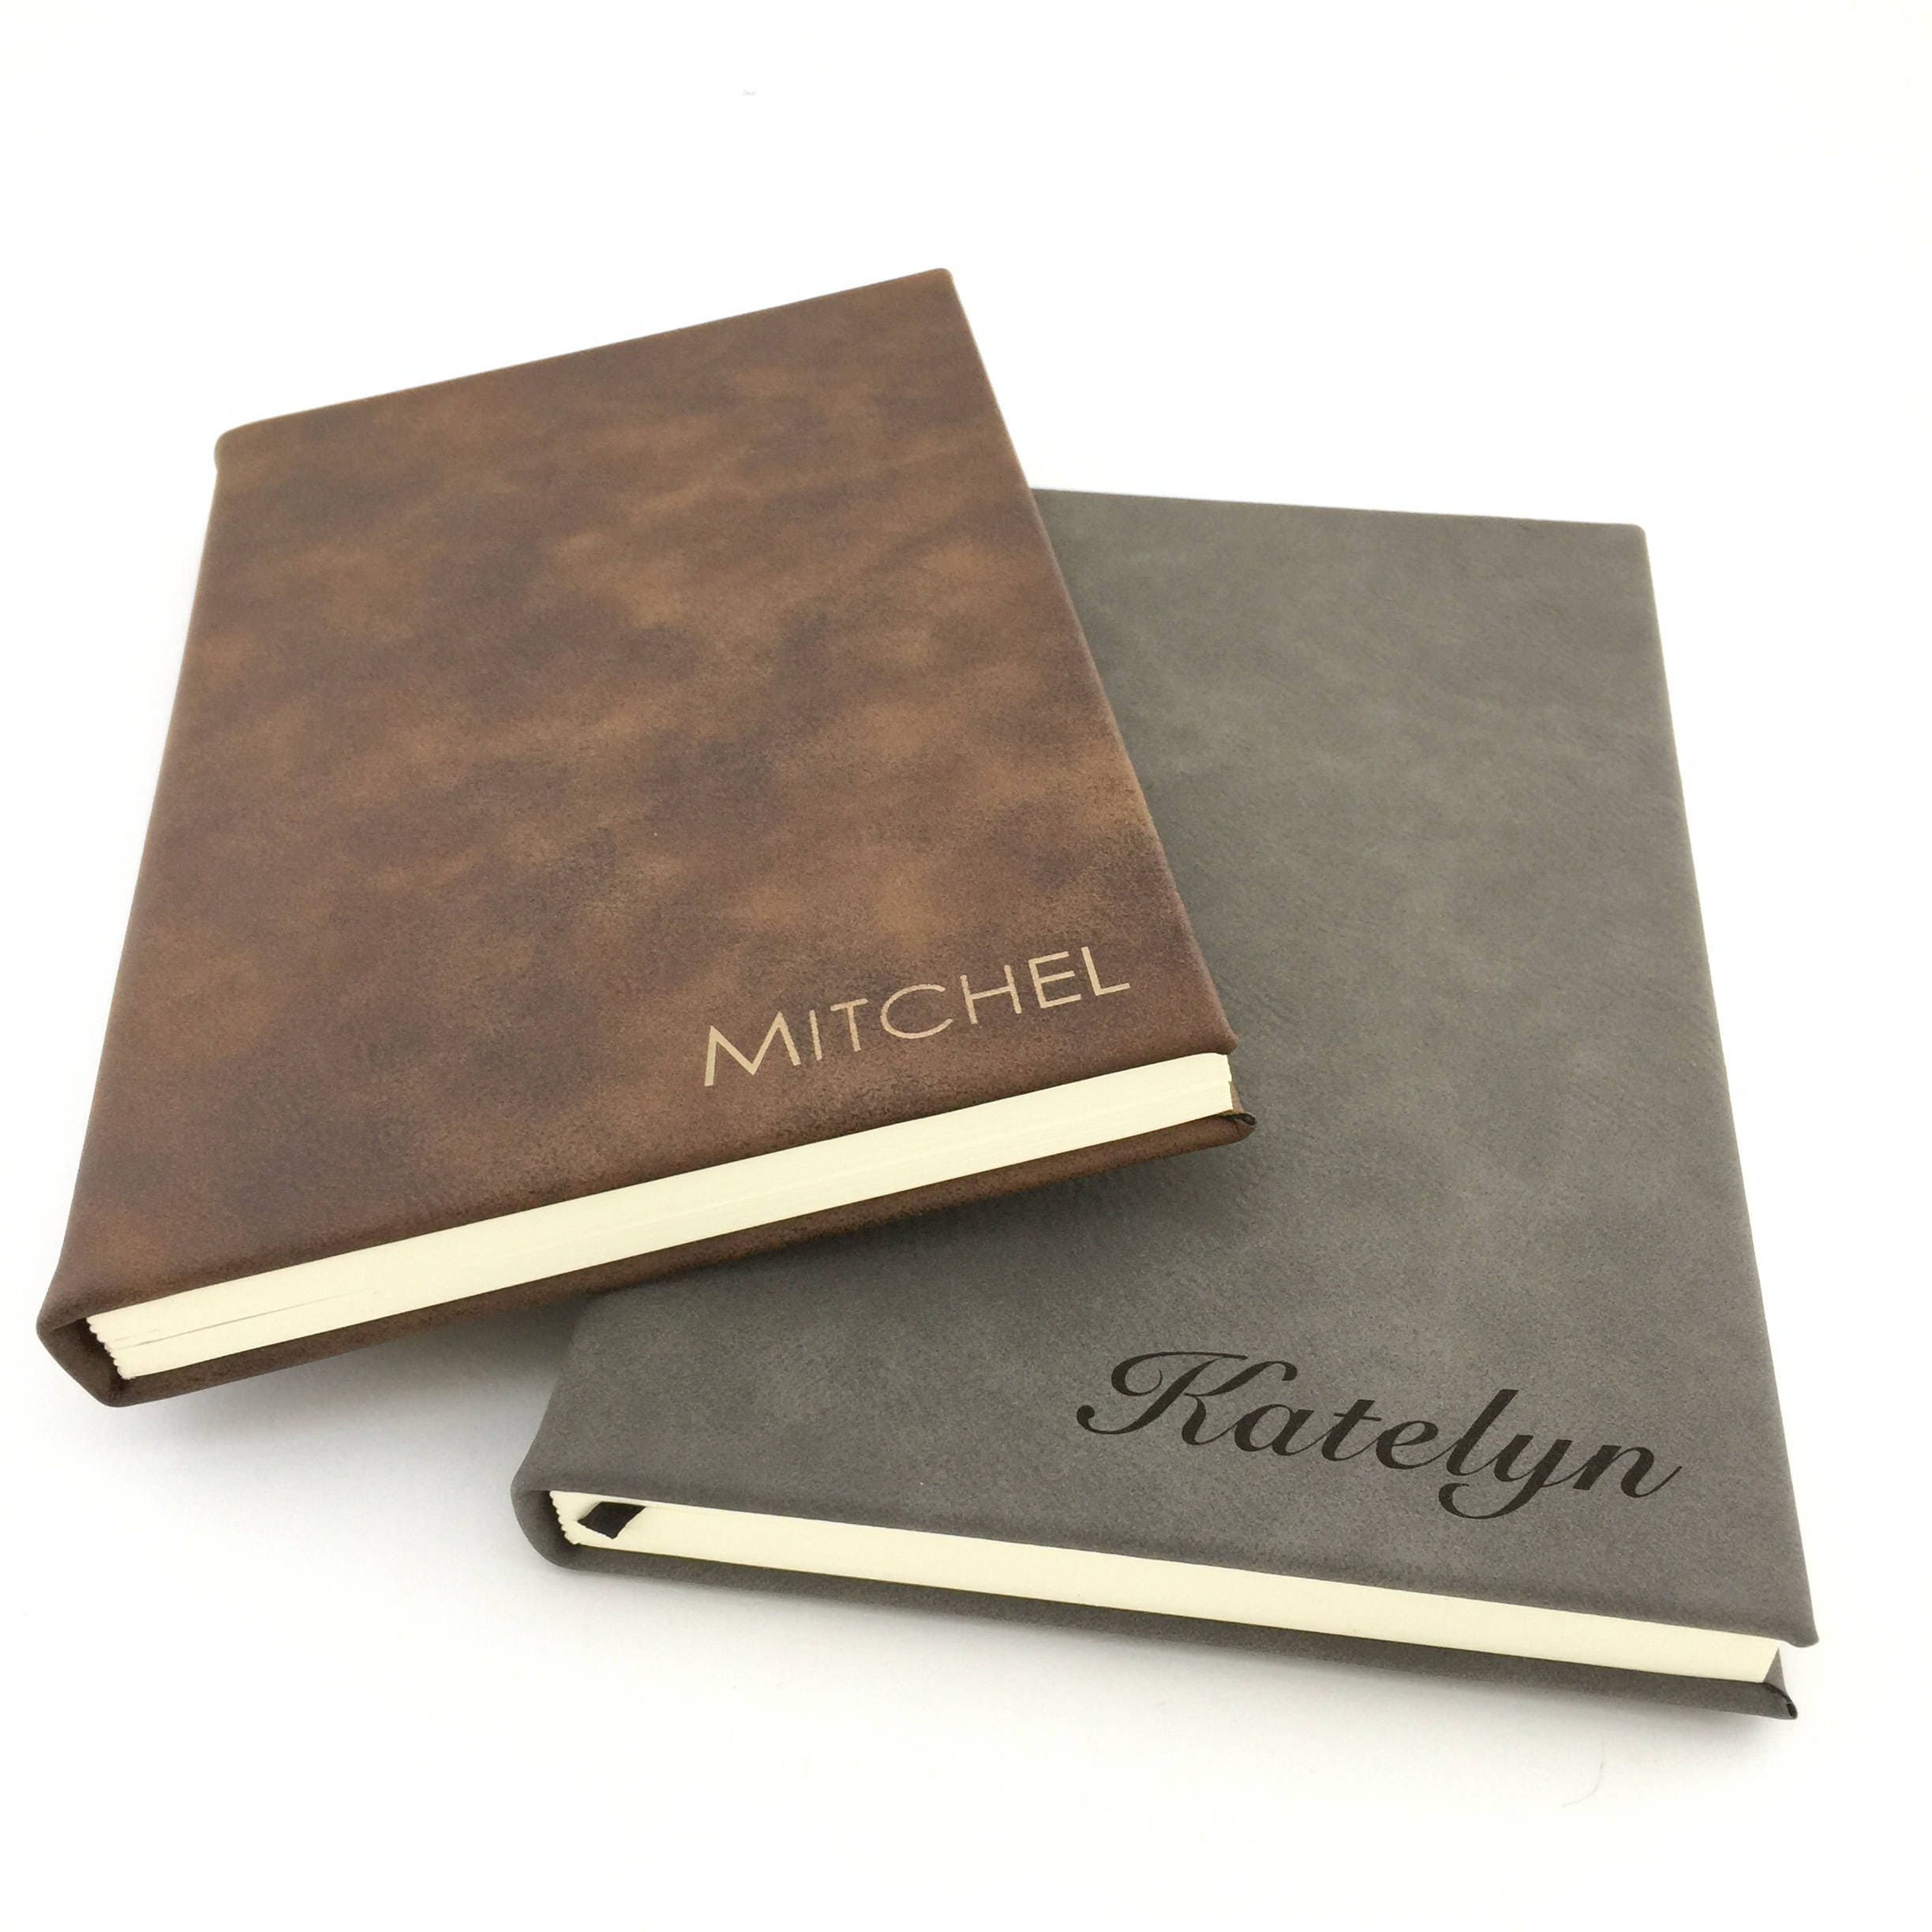 Personalized Journal Diary Monogram Bullet Journal Christmas Gift For Men Or Women Lined Journal Personalized Gift